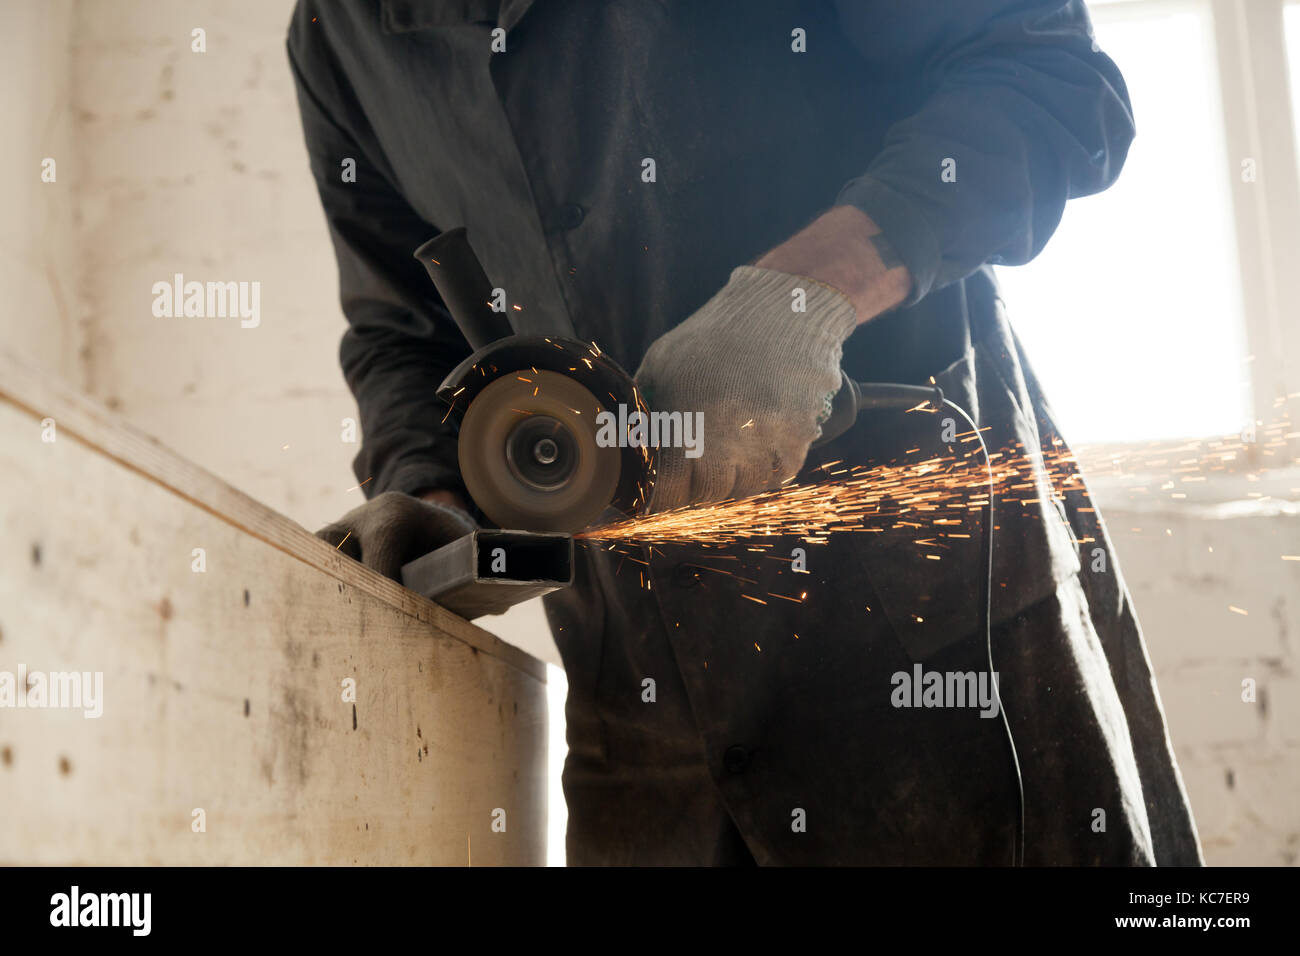 Close up of cutting metal pipe, man using angle grinder - Stock Image